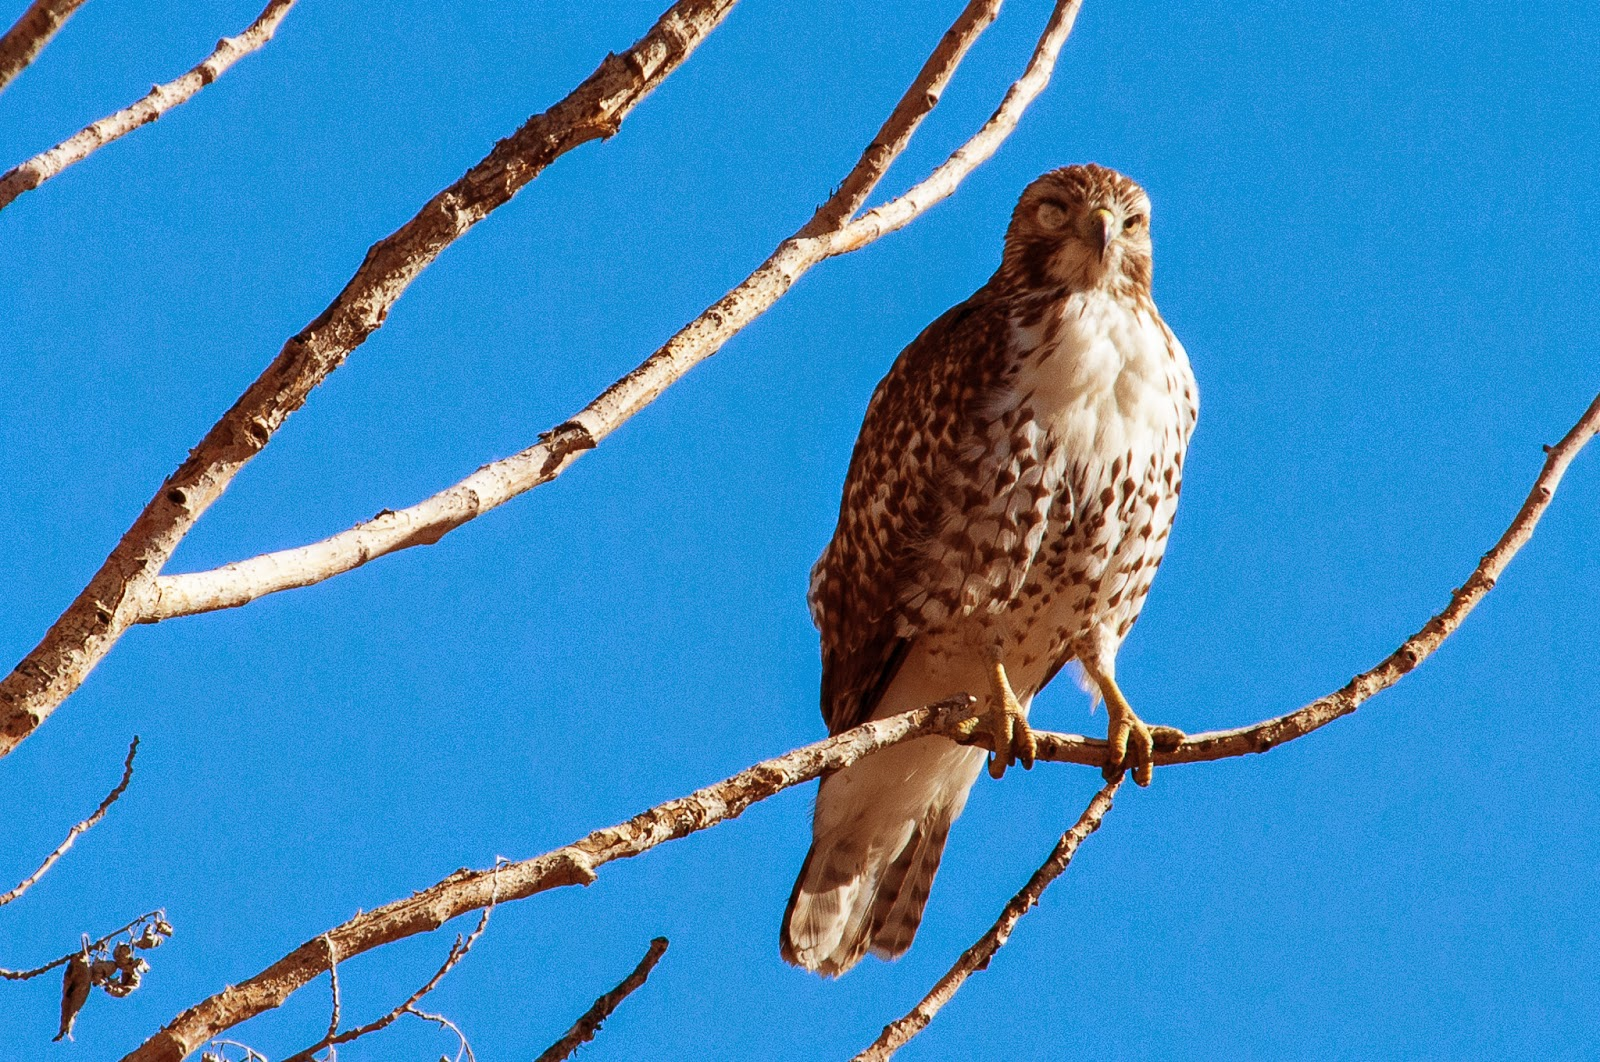 Red-tailed Hawk, Rocky Mountain Arsenal National Wildlife Refuge